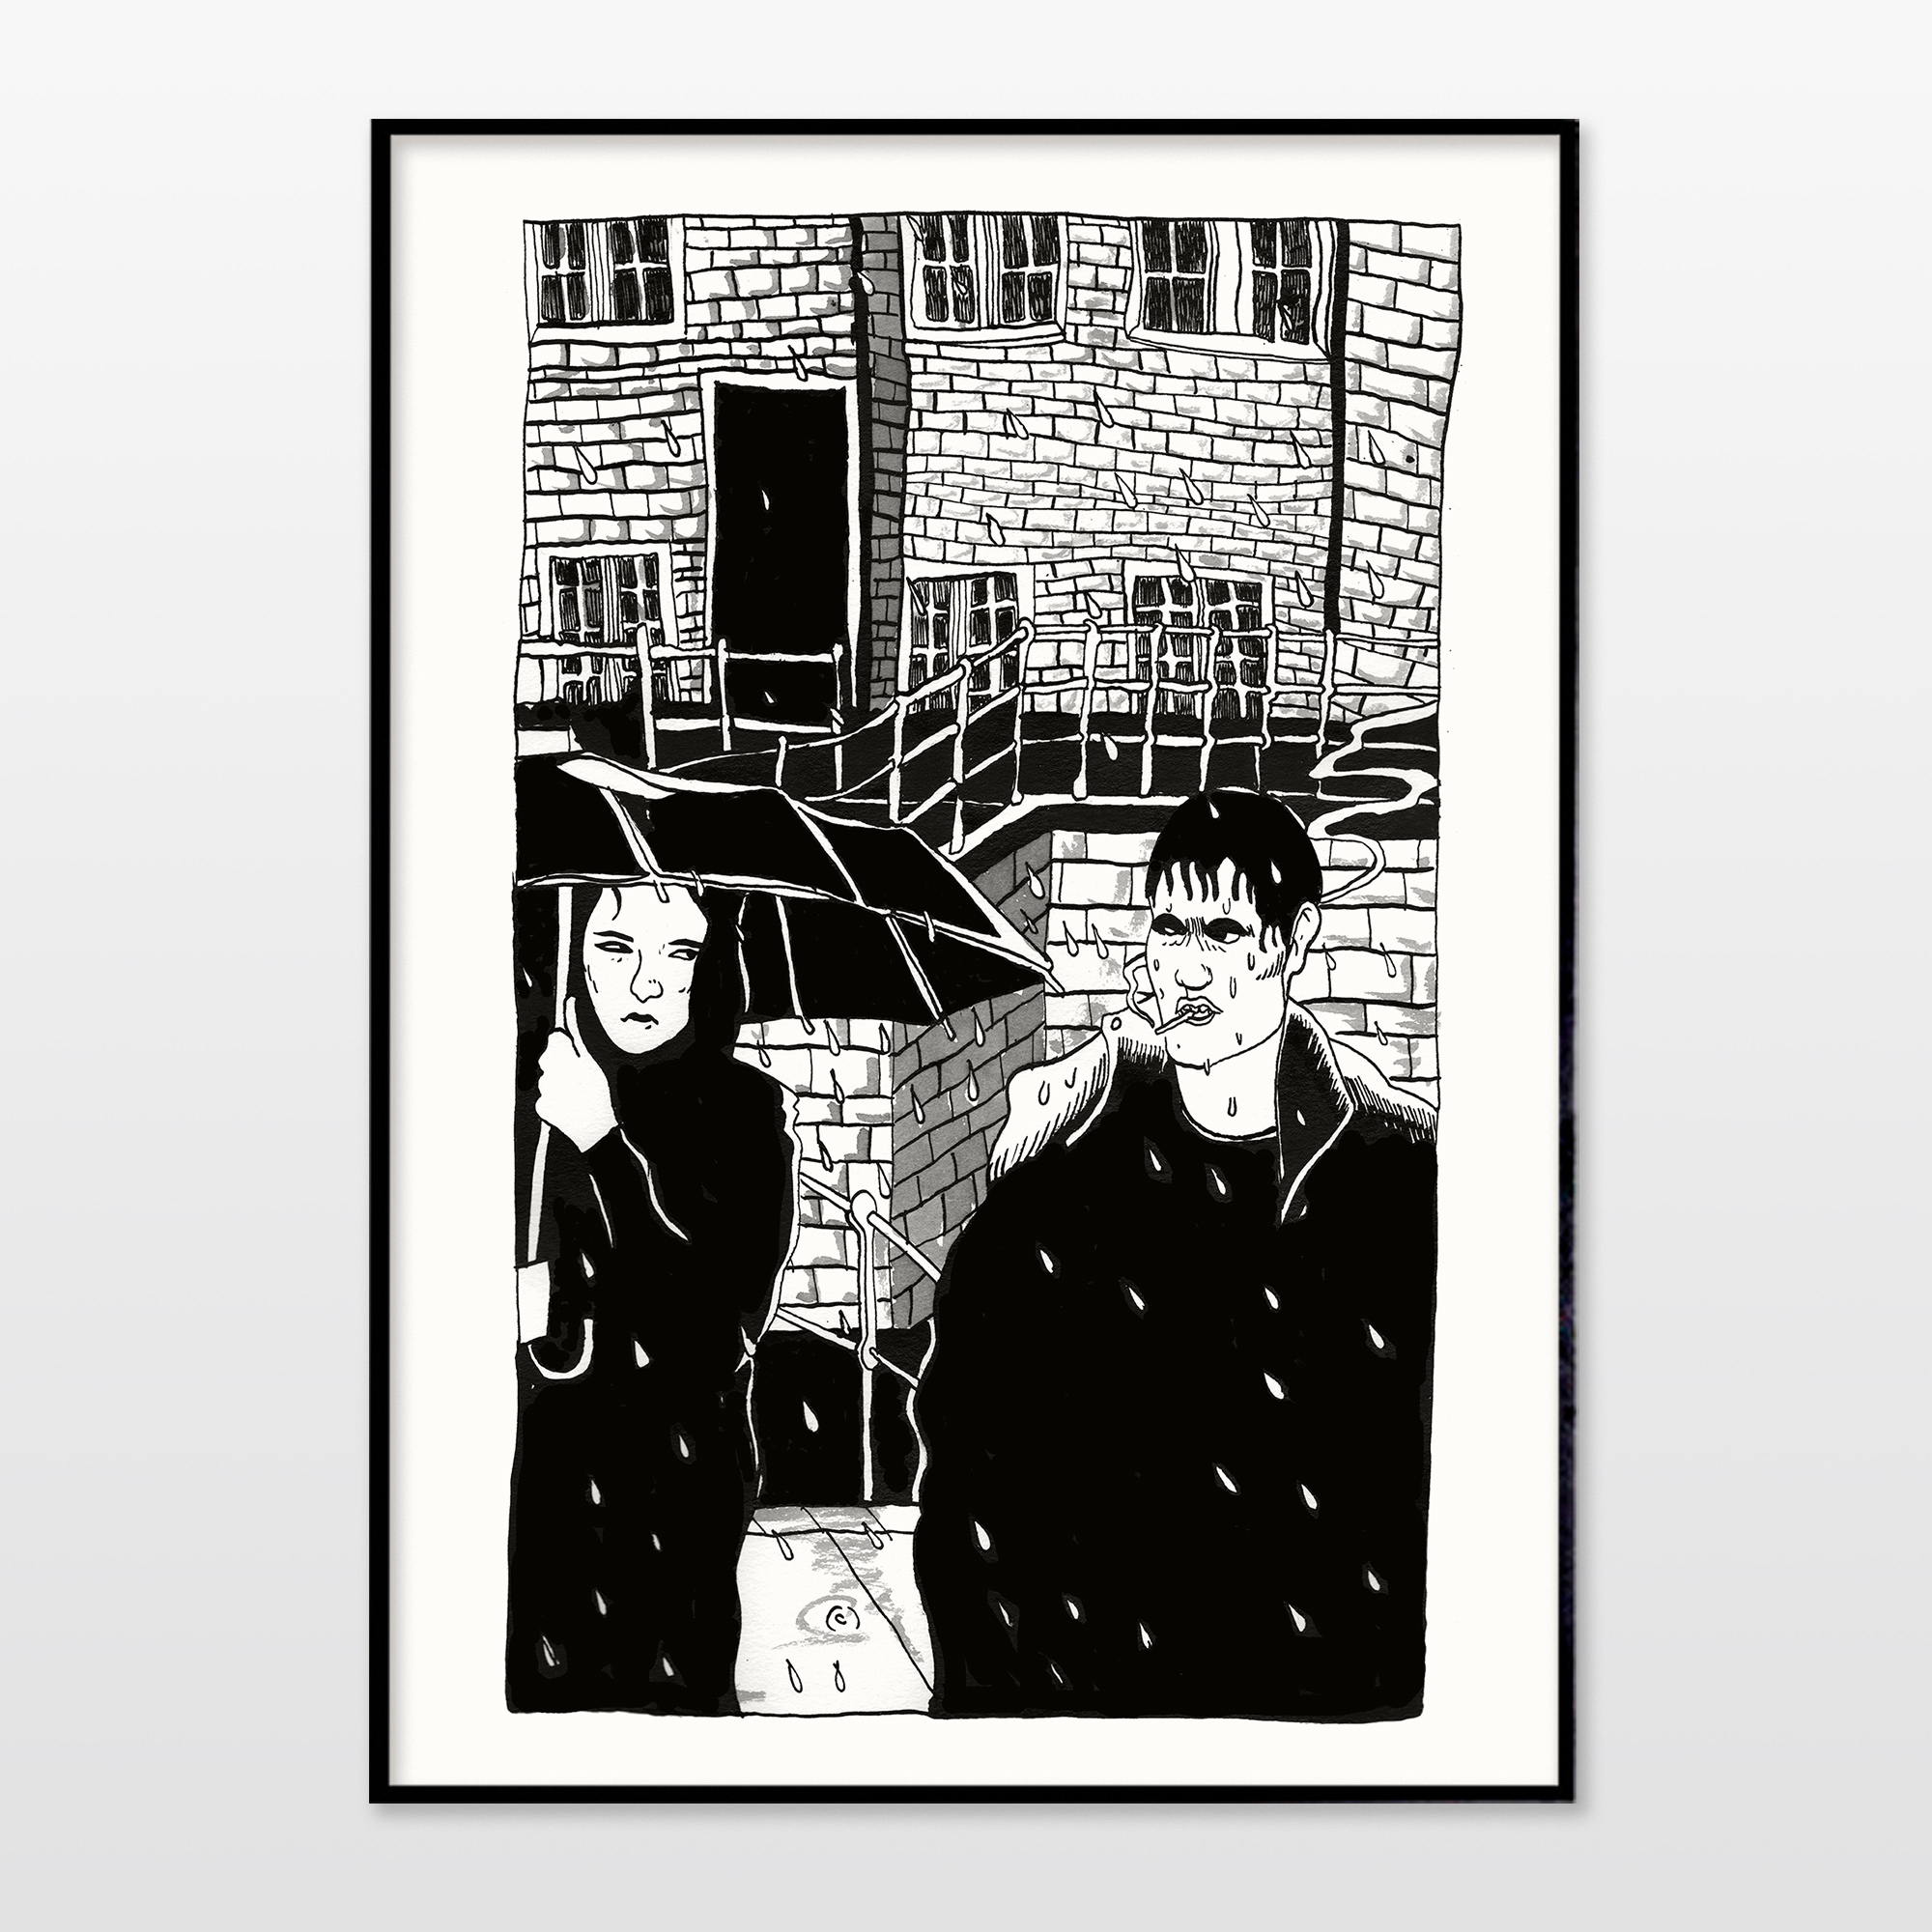 posters-prints, giclee-print, graphical, illustrative, monochrome, portraiture, architecture, bodies, cartoons, people, black, white, paper, black-and-white, contemporary-art, copenhagen, danish, decorative, design, interior, interior-design, love, men, modern, modern-art, nordic, scandinavien, sketch, Buy original high quality art. Paintings, drawings, limited edition prints & posters by talented artists.